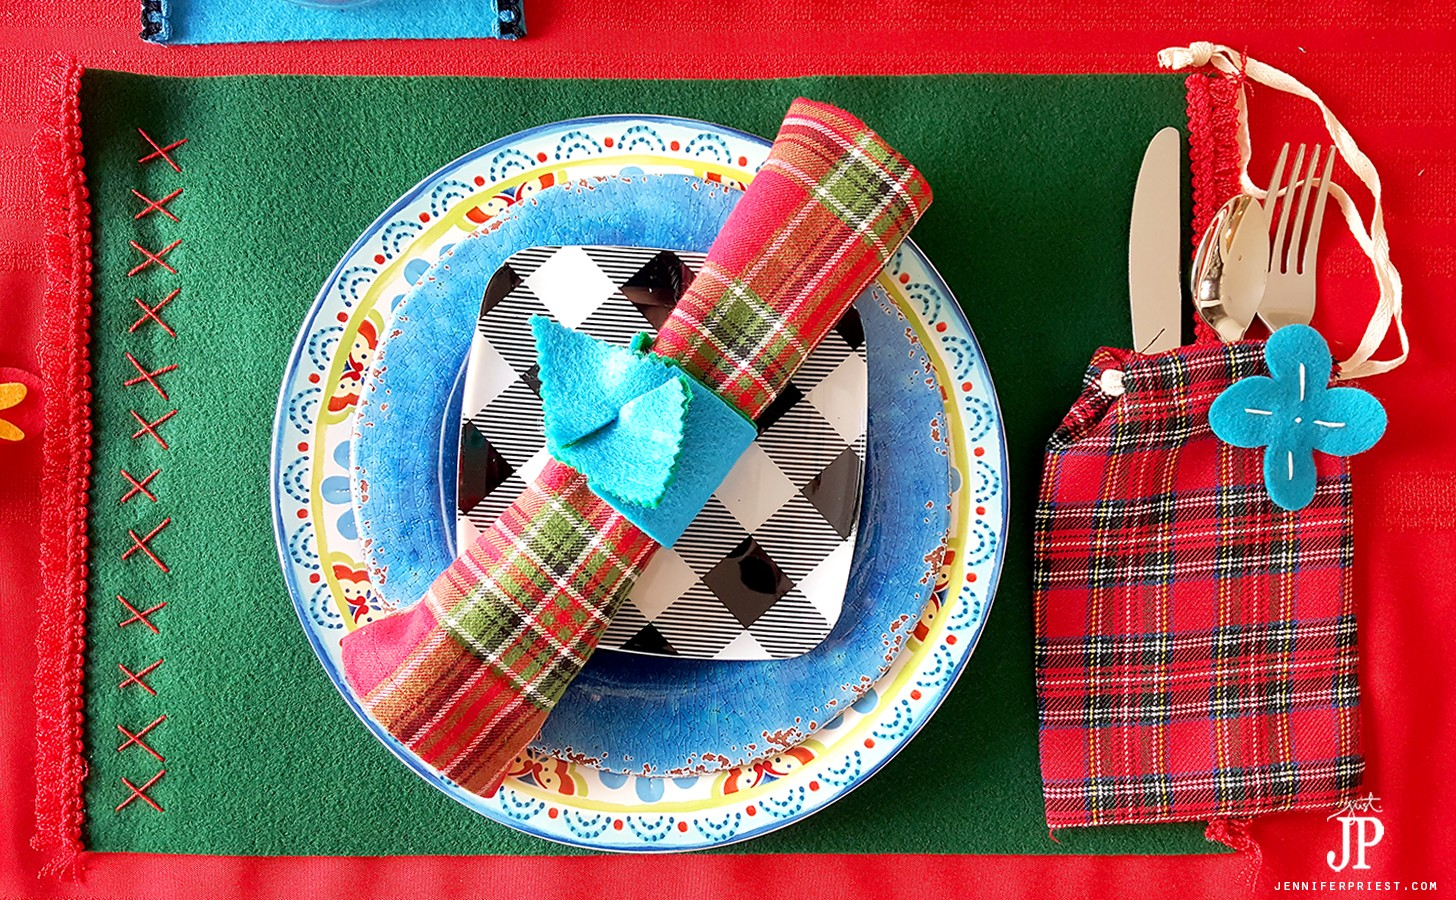 DIY-Place-Setting-with-felt-placemats-PLAID-napkins-JPriest